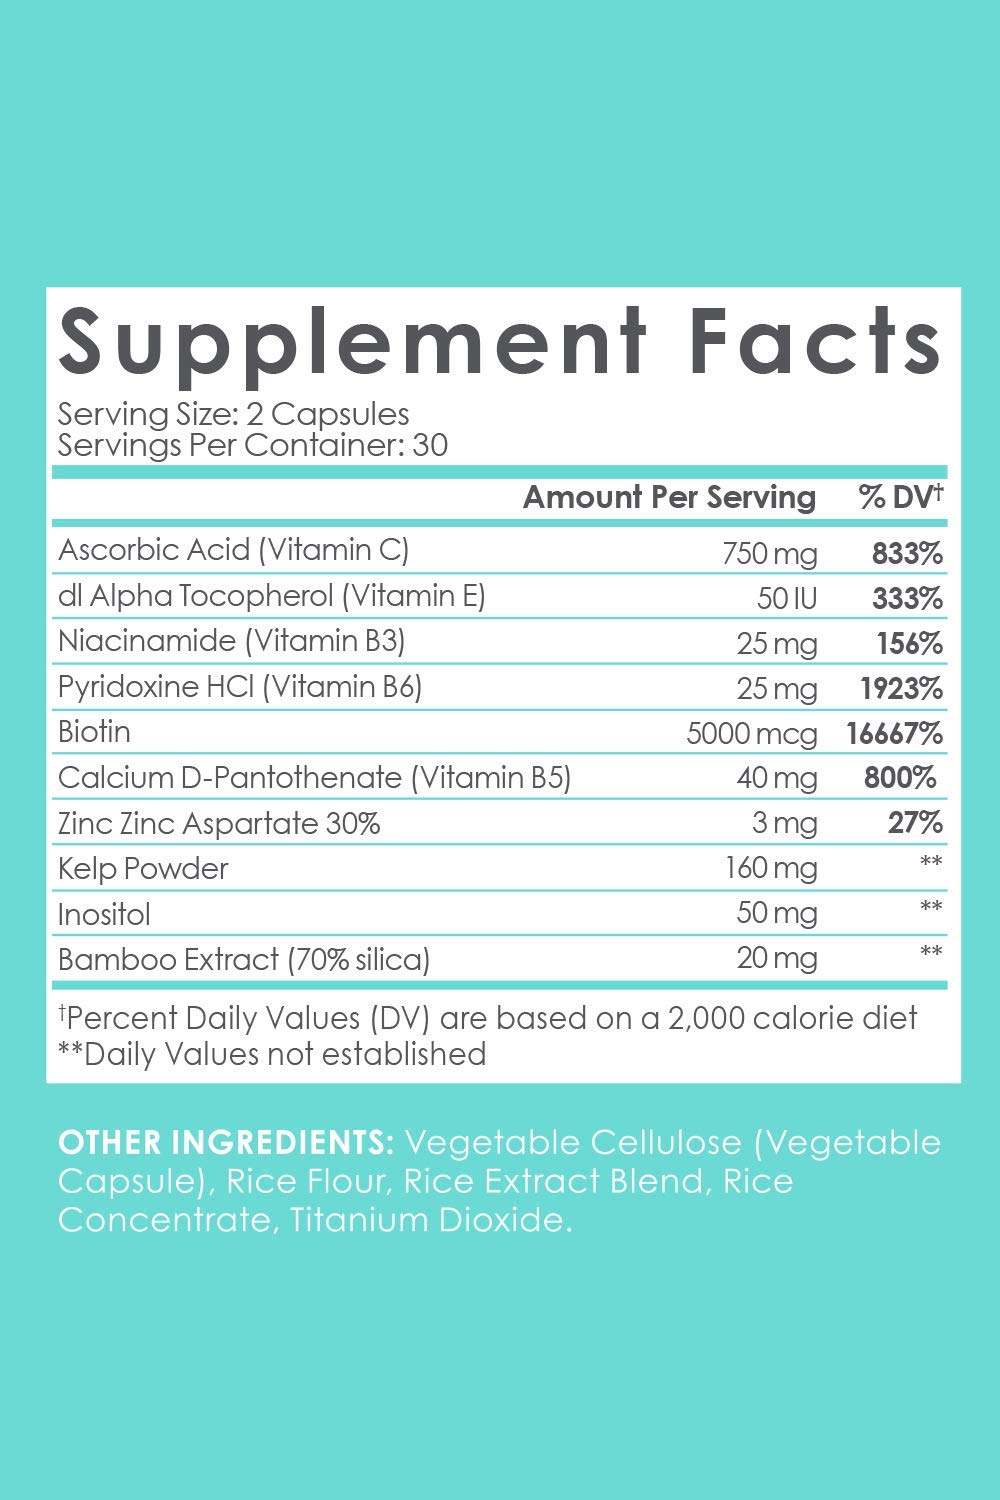 SkinnyFit Daily Glow: Hair, Skin and Nails Supplement for Radiant Skin, Stronger Hair and Nails with Biotin, Vitamins A, C and B (60 Capsules)